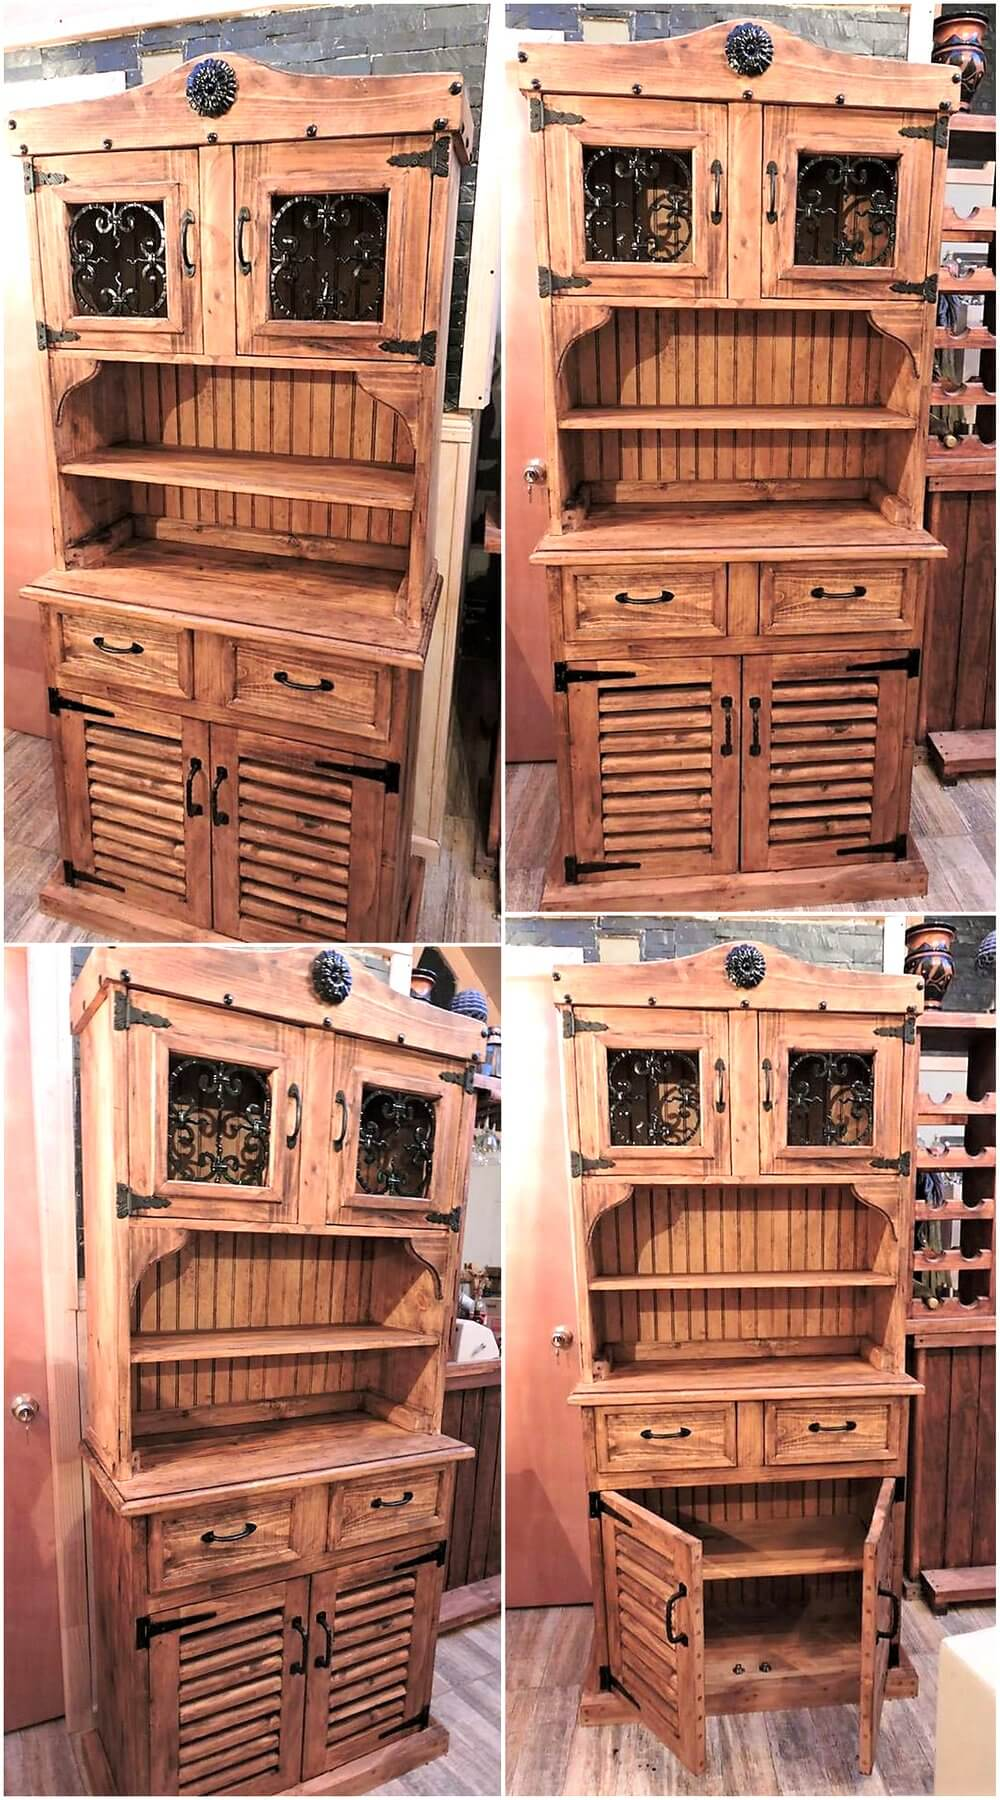 Recycled Wooden Pallets Rustic Cupboard Wood Pallet Furniture # Muebles Pailets